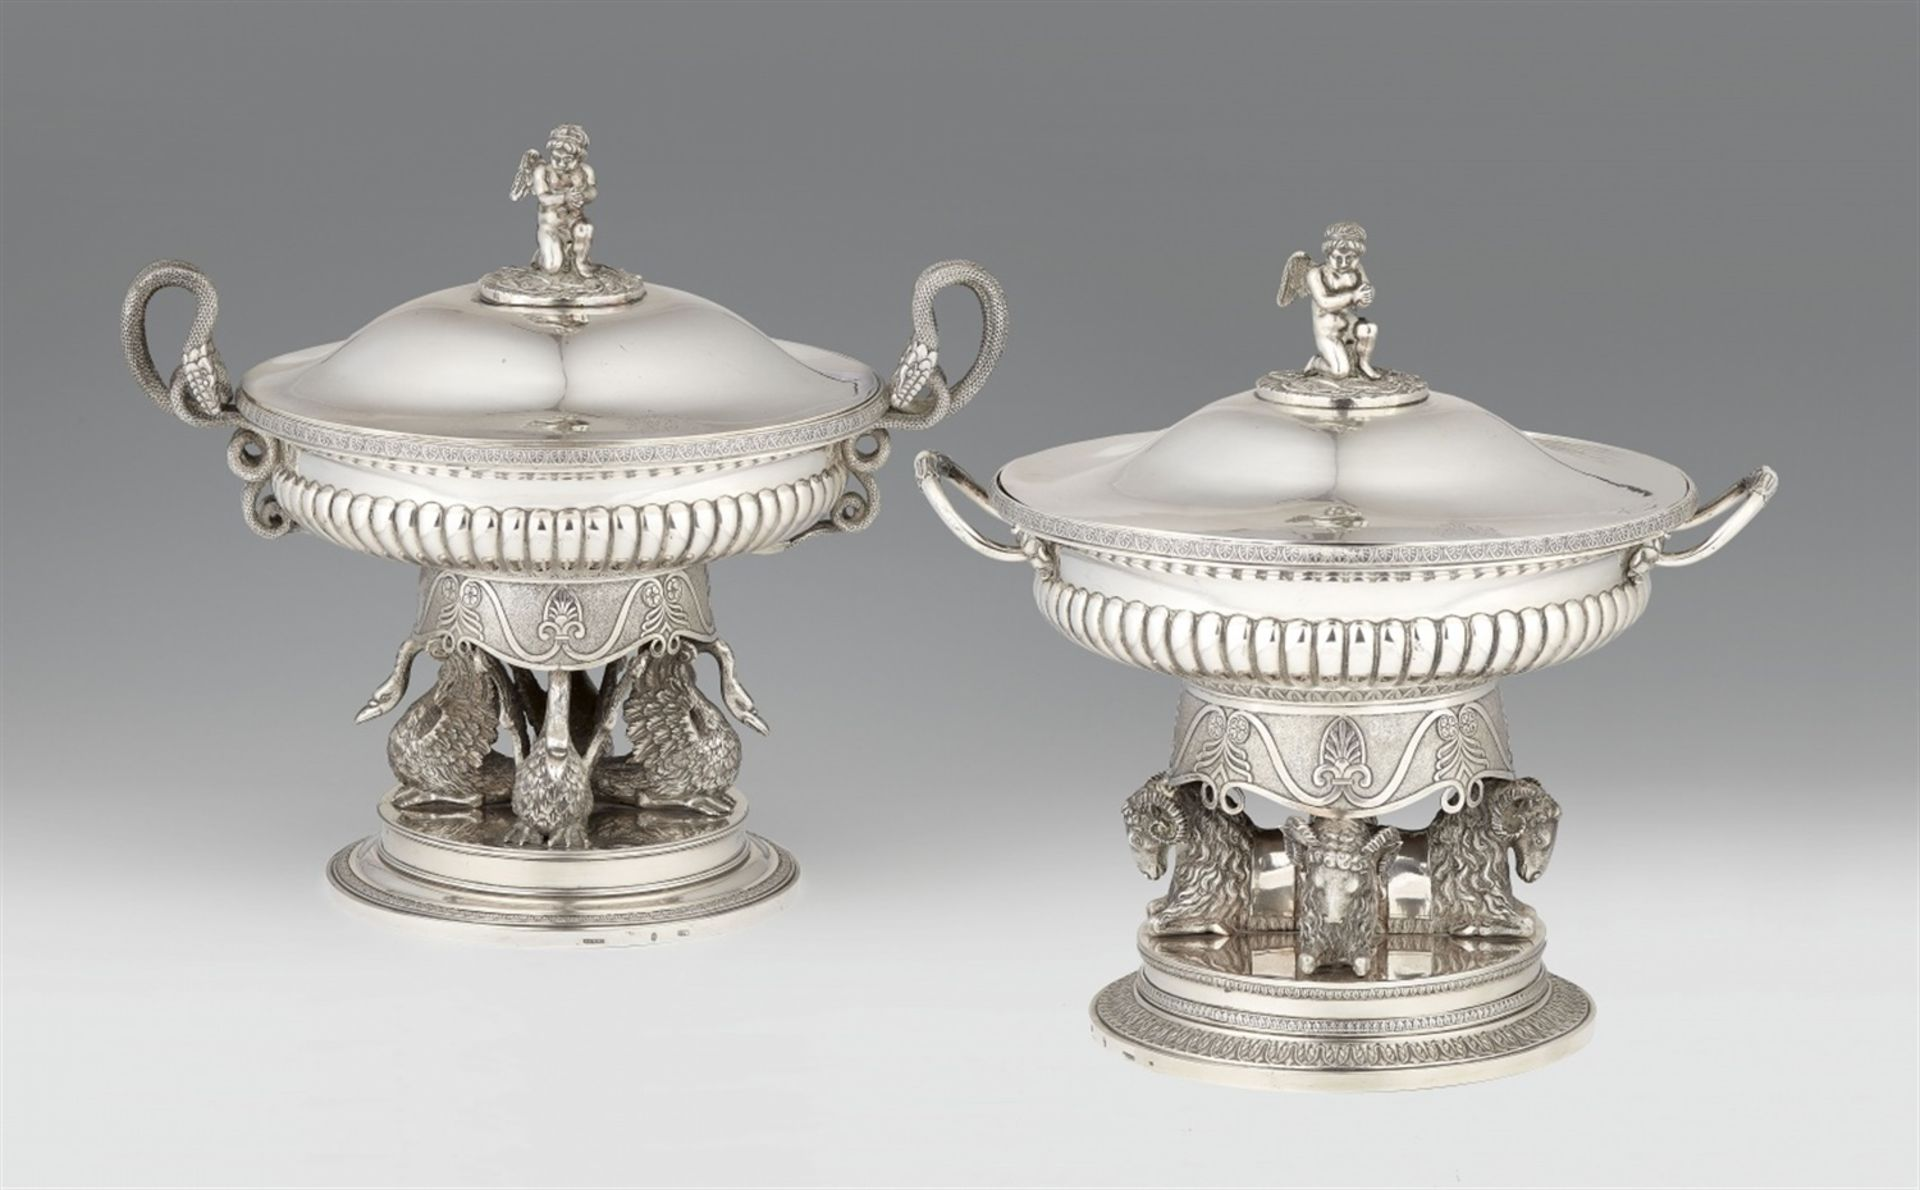 Los 712 - A pair of important silver tureens made for Grand Duke Georg von Mecklenburg-StrelitzSilver; gold-